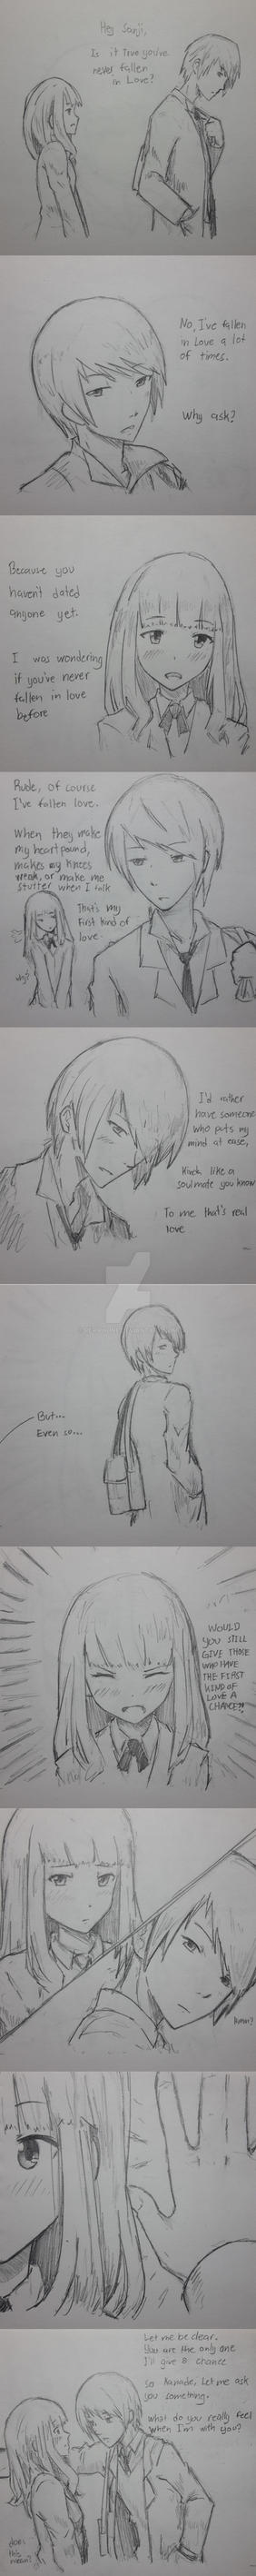 Short Comic (part 1) by Periphone